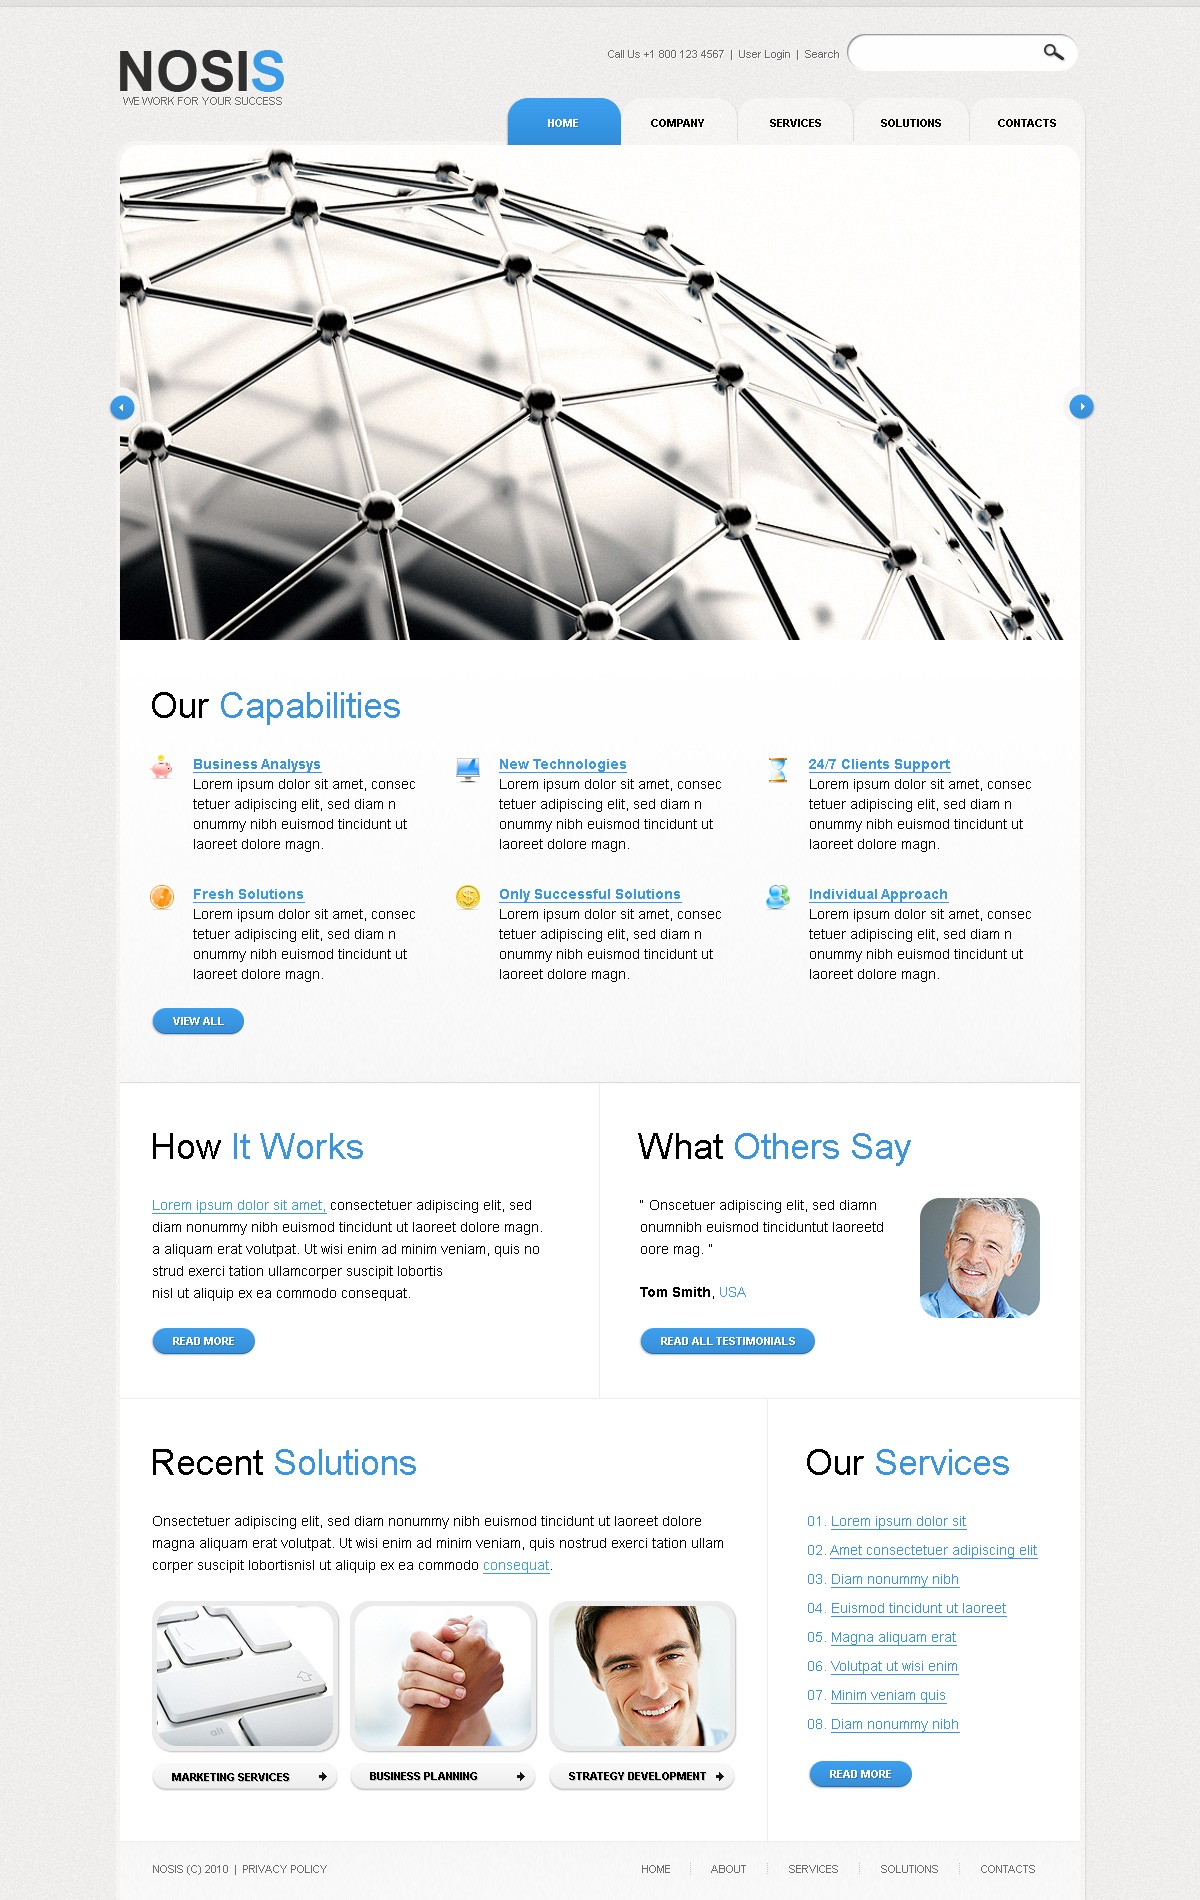 The Nosis Business Company PSD Design 54459, one of the best PSD templates of its kind (business, flash 8, wide), also known as nosis business company PSD template, corporate solutions PSD template, innovations PSD template, contacts PSD template, service PSD template, support PSD template, information dealer PSD template, stocks PSD template, team PSD template, success PSD template, money PSD template, marketing PSD template, director PSD template, manager PSD template, analytics PSD template, planning PSD template, limited PSD template, office PSD template, sales and related with nosis business company, corporate solutions, innovations, contacts, service, support, information dealer, stocks, team, success, money, marketing, director, manager, analytics, planning, limited, office, sales, etc.